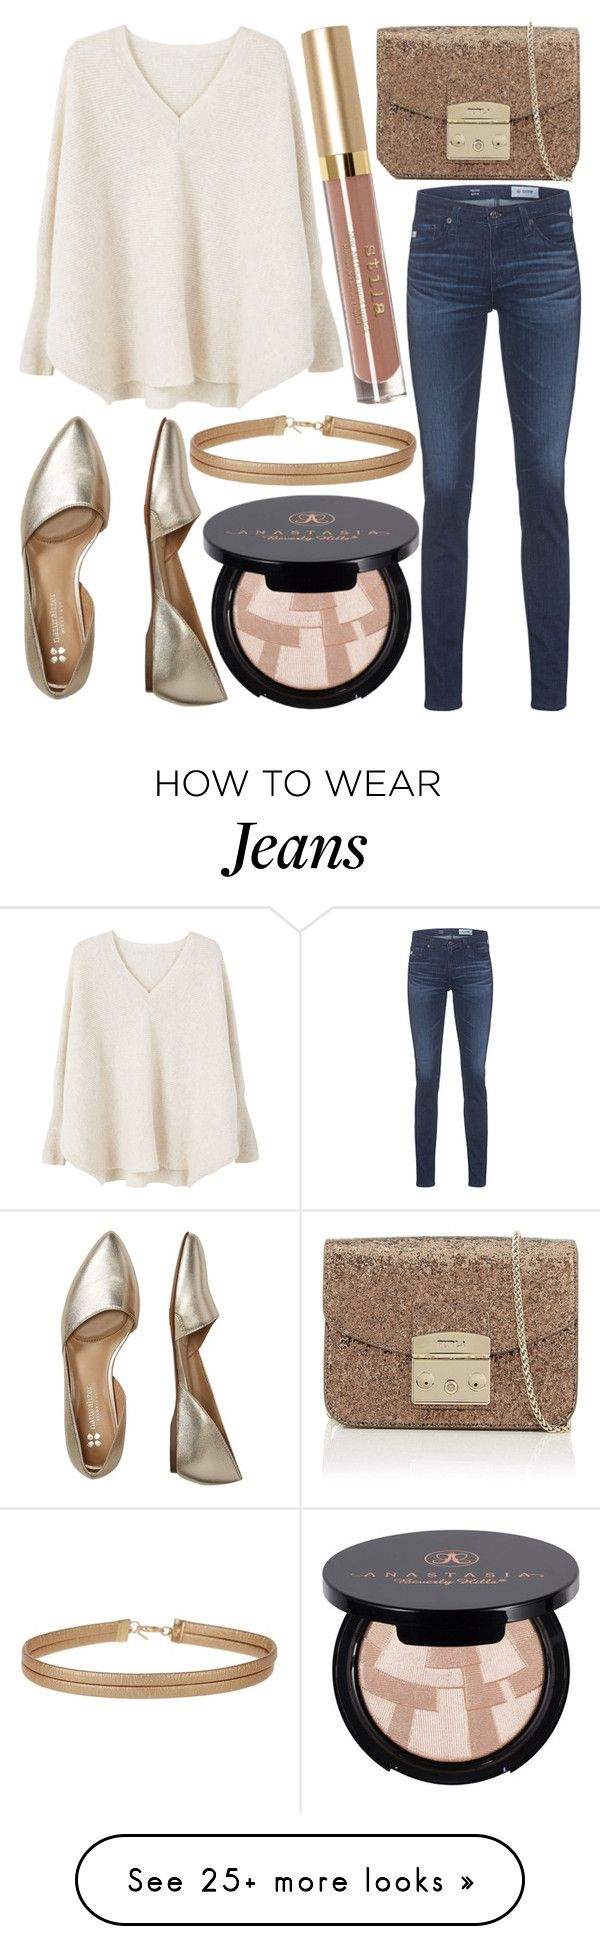 """Untitled #701"" by daimy-style on Polyvore featuring MANGO, AG Adriano Goldschmied, Bzees, Furla, Miss Selfridge and Anastasia Beverly Hills"